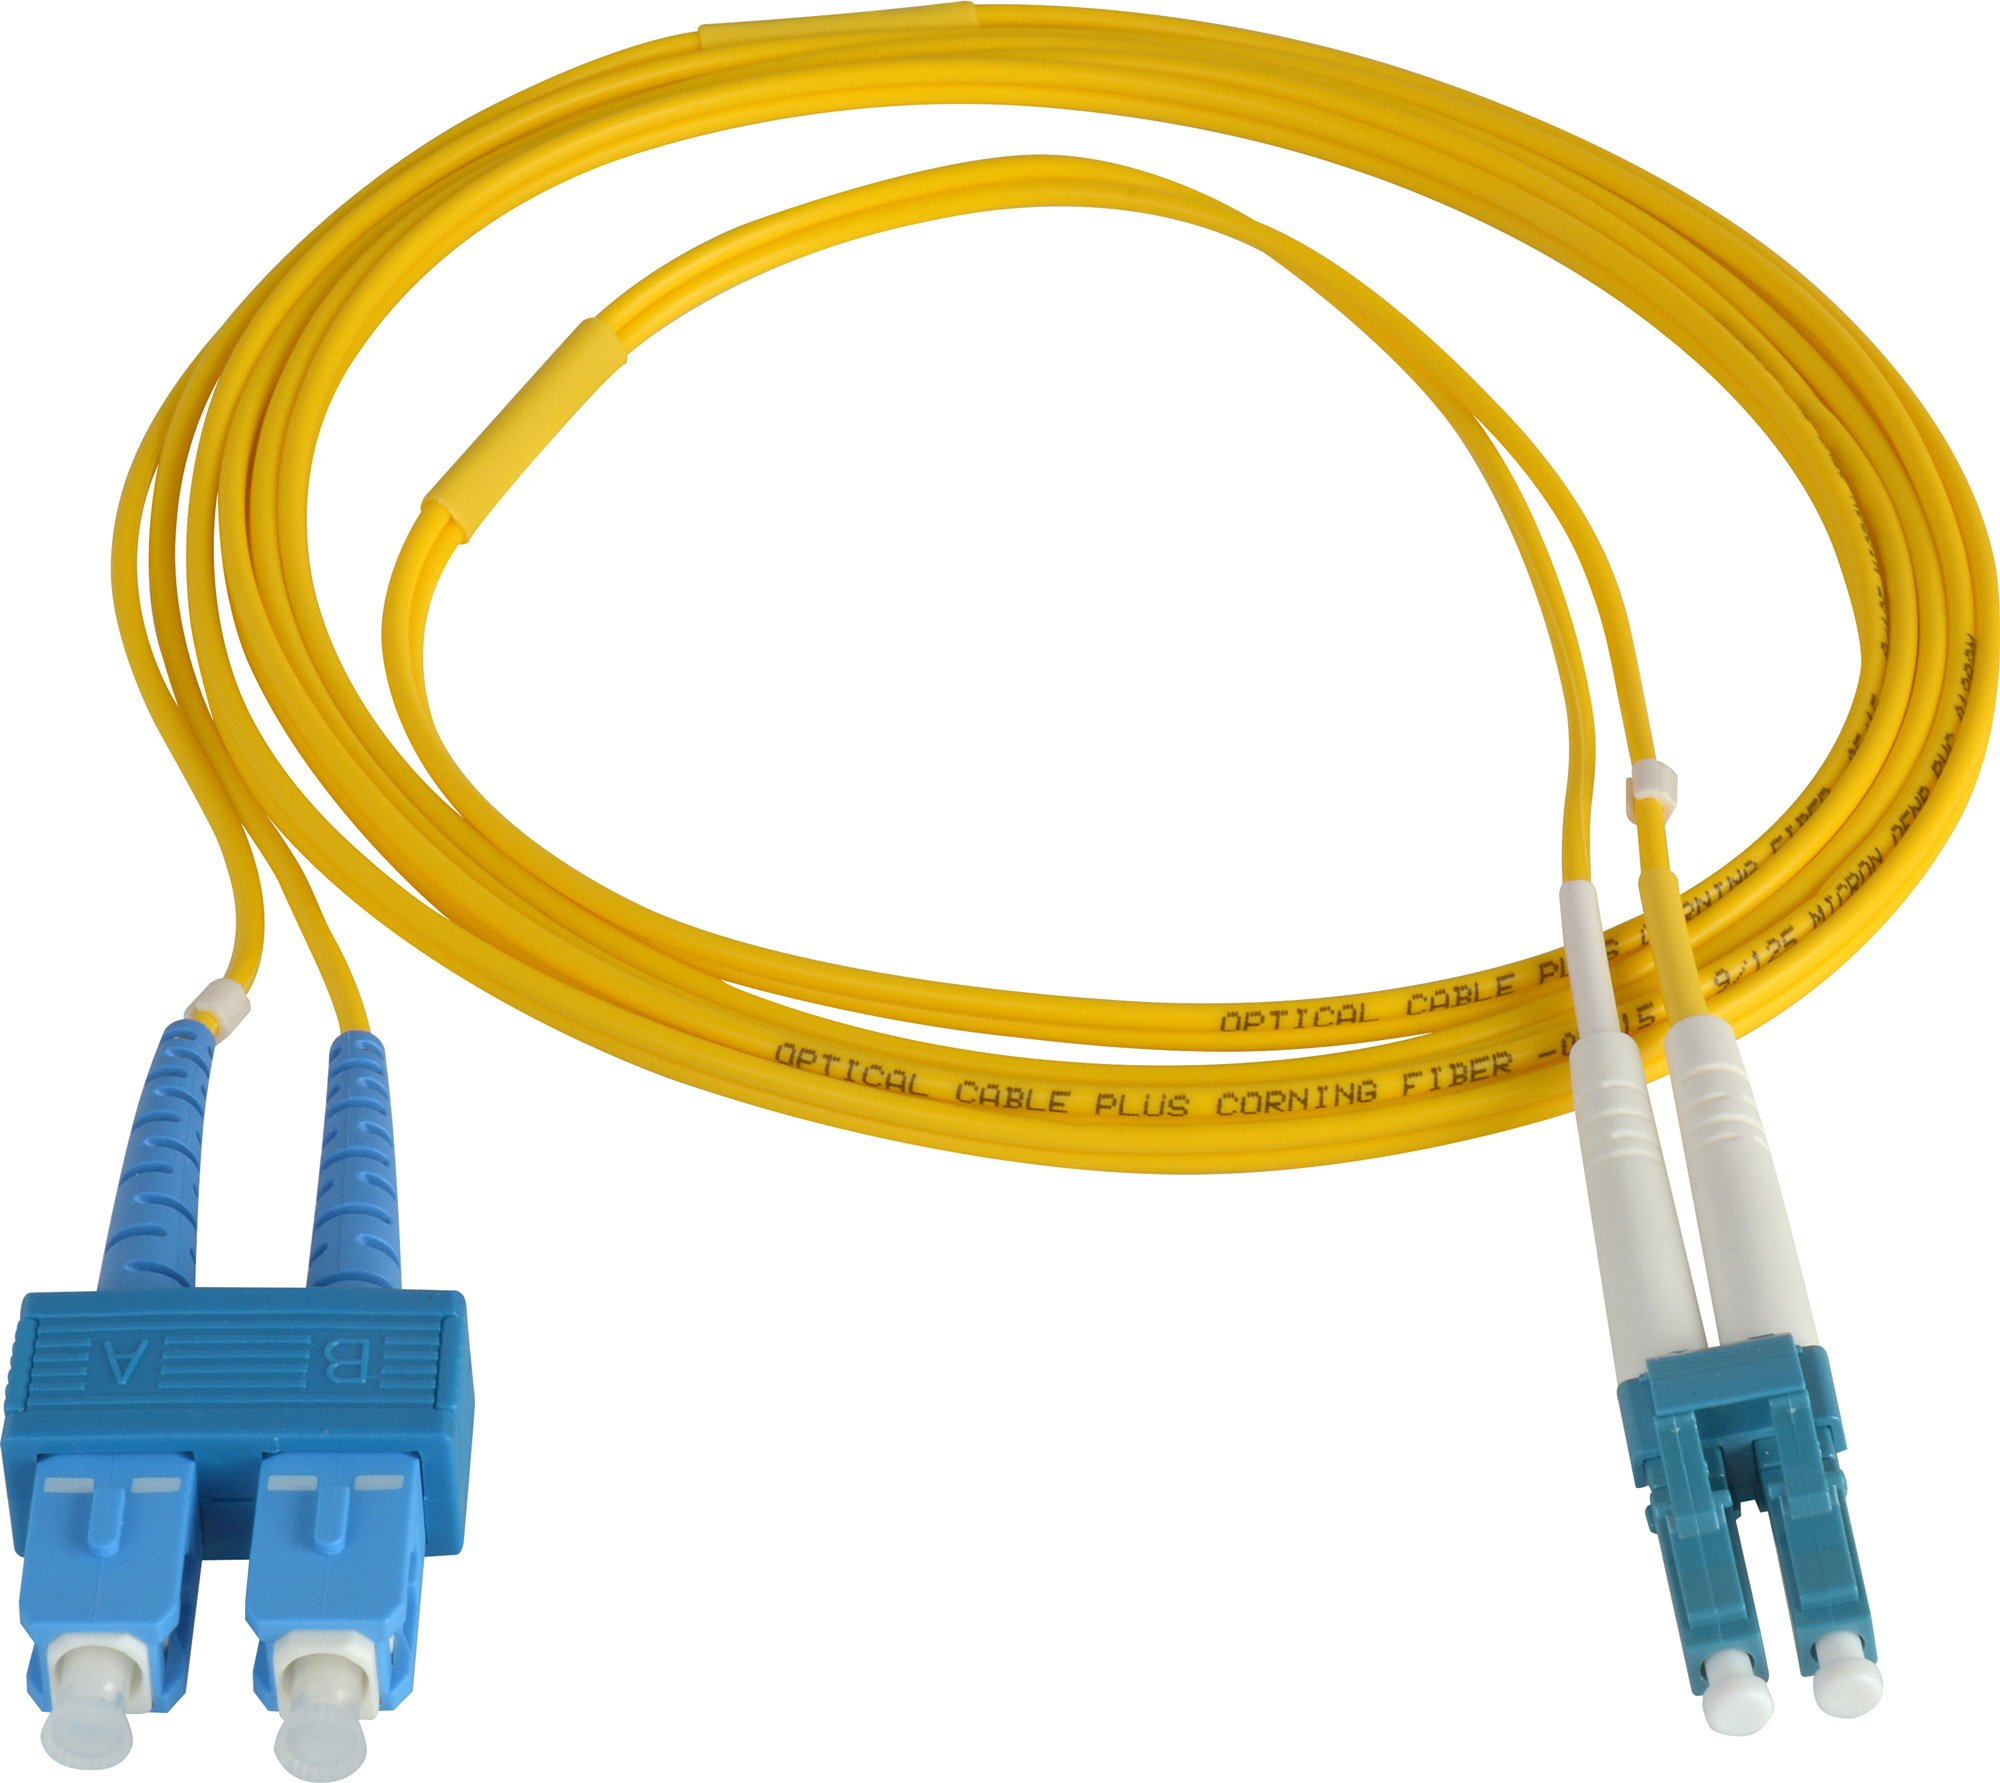 Lc To Sc Fiber Cable